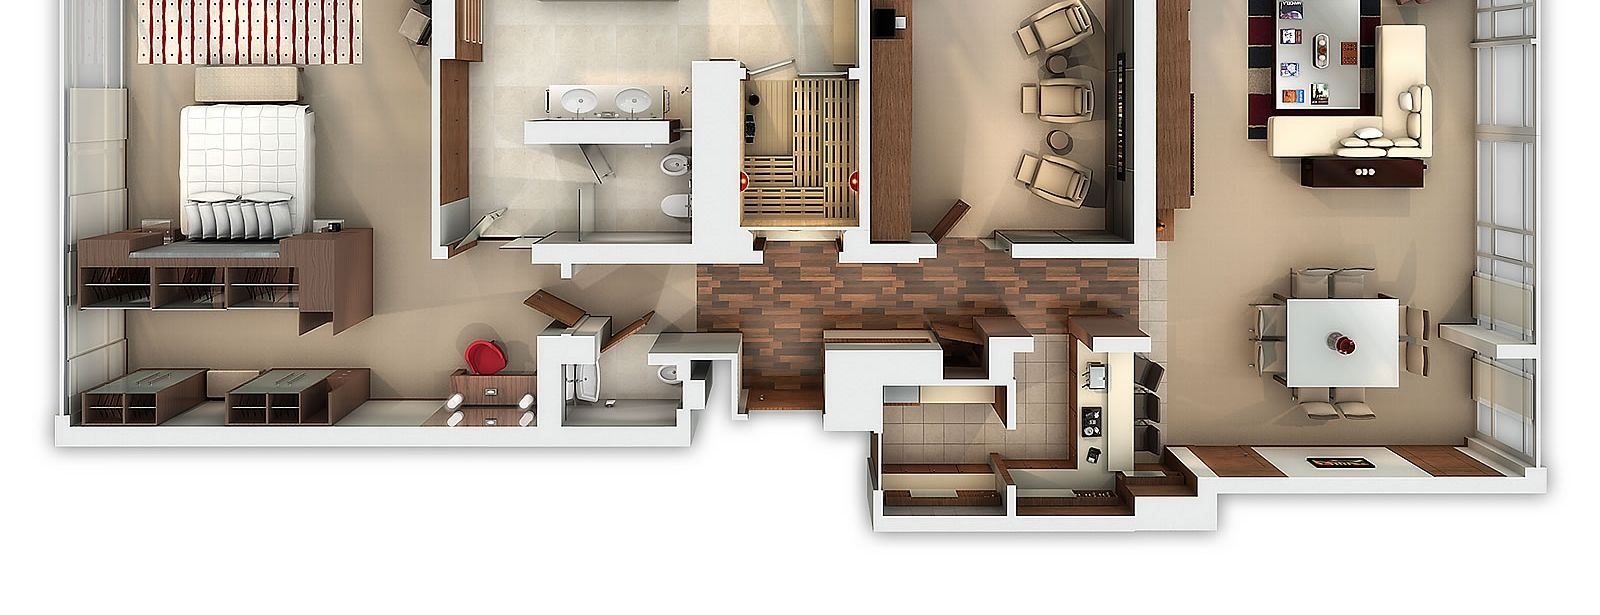 Westin Cape Town Presidential Suite 3D Rendering Aerial View